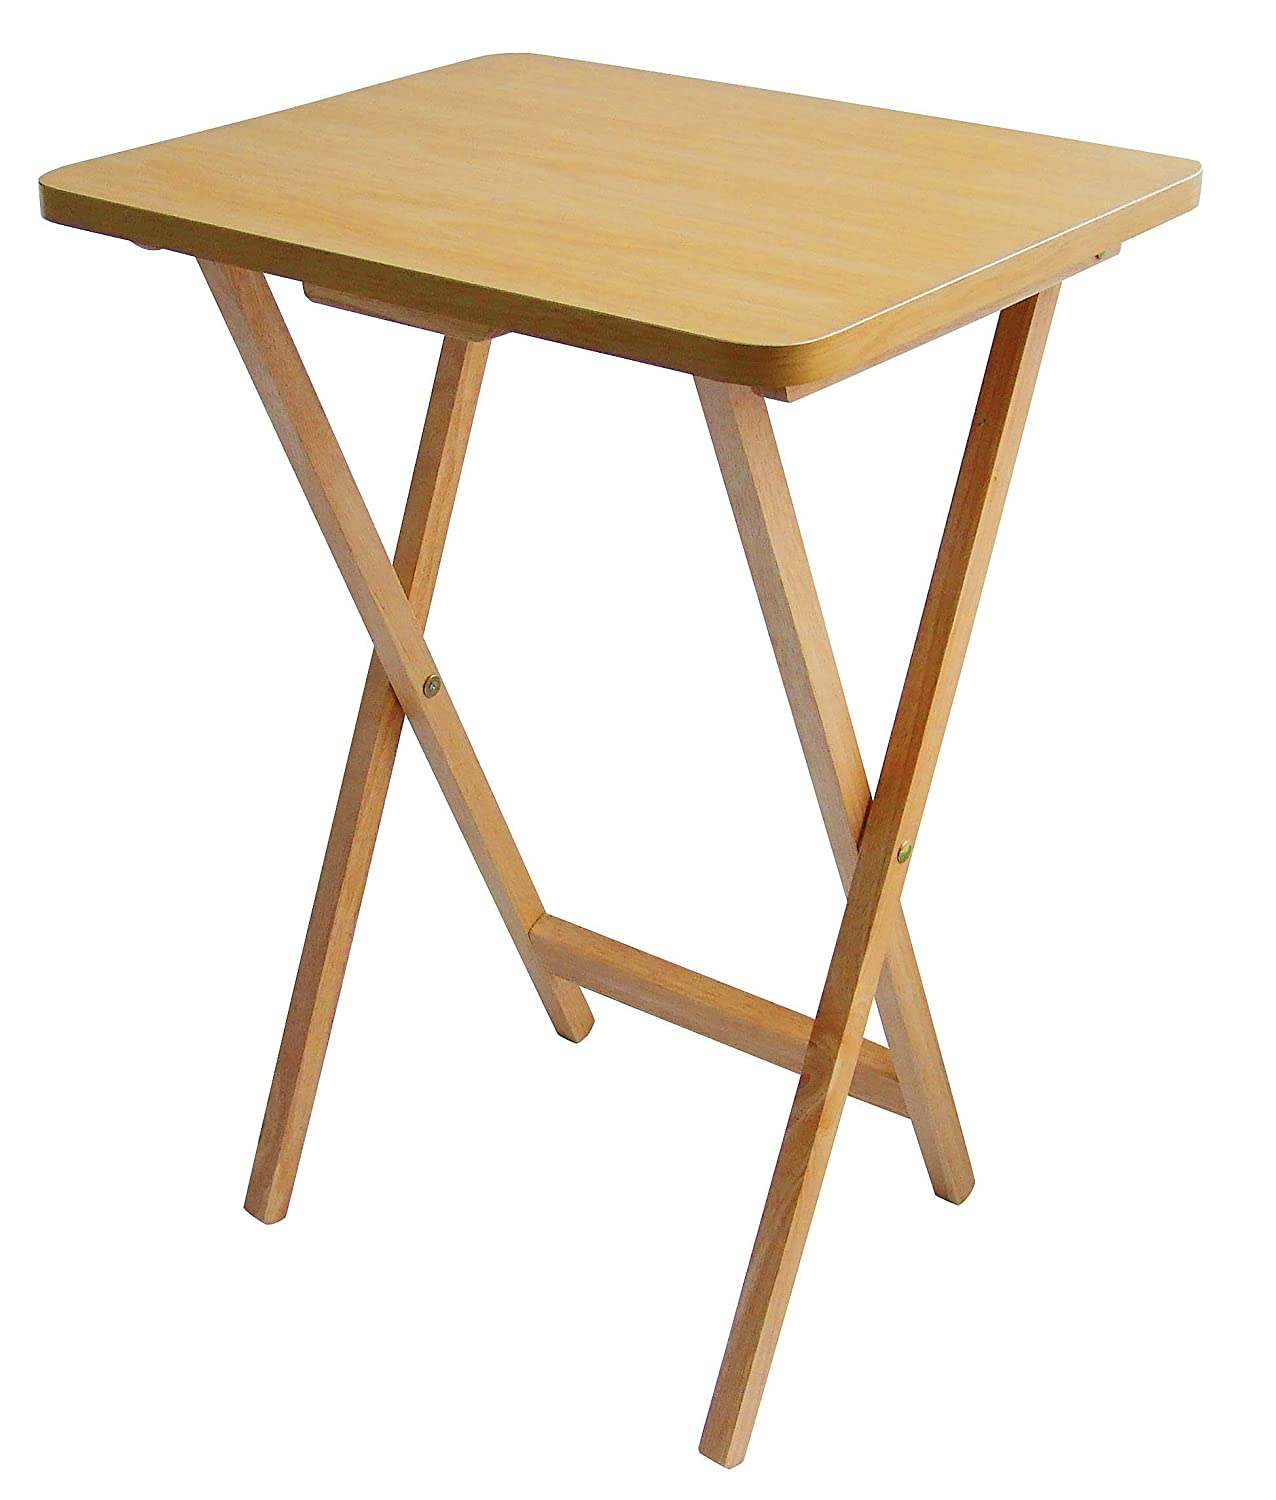 Folding wooden snack table desk small dining foldable for Wooden small dining table